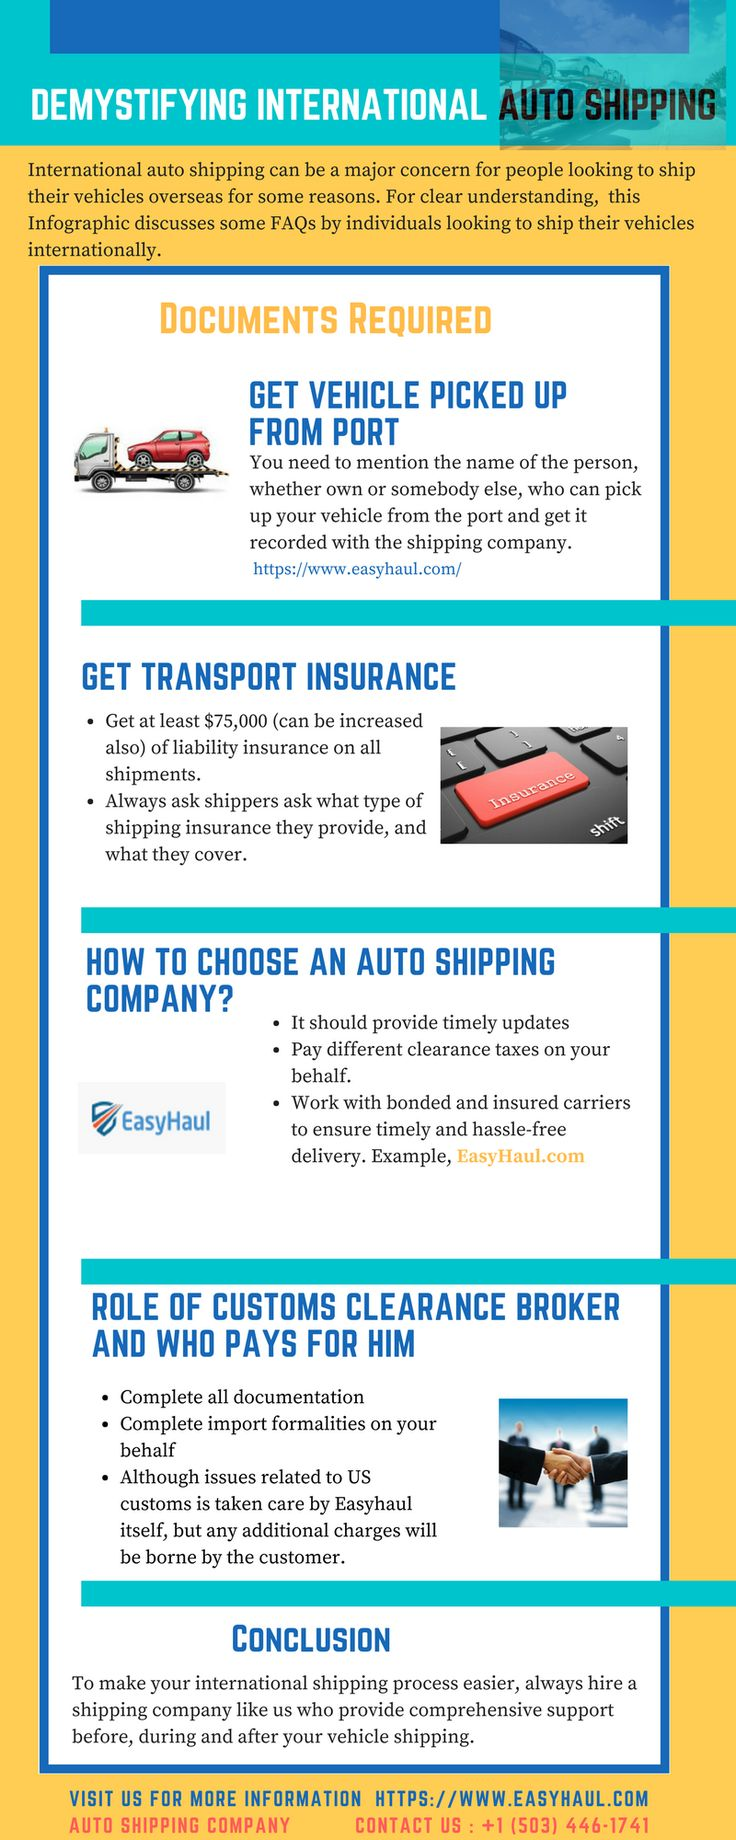 Demystifying International Auto Shipping  International auto shipping can be a major concern for people looking to ship their vehicles overseas for a variety of reasons. Everything from the money for payment, to preparing the vehicle for shipment, can leave you with questions. To help clear the air, this infographic discusses some FAQs by individuals looking to ship their vehicles internationally.